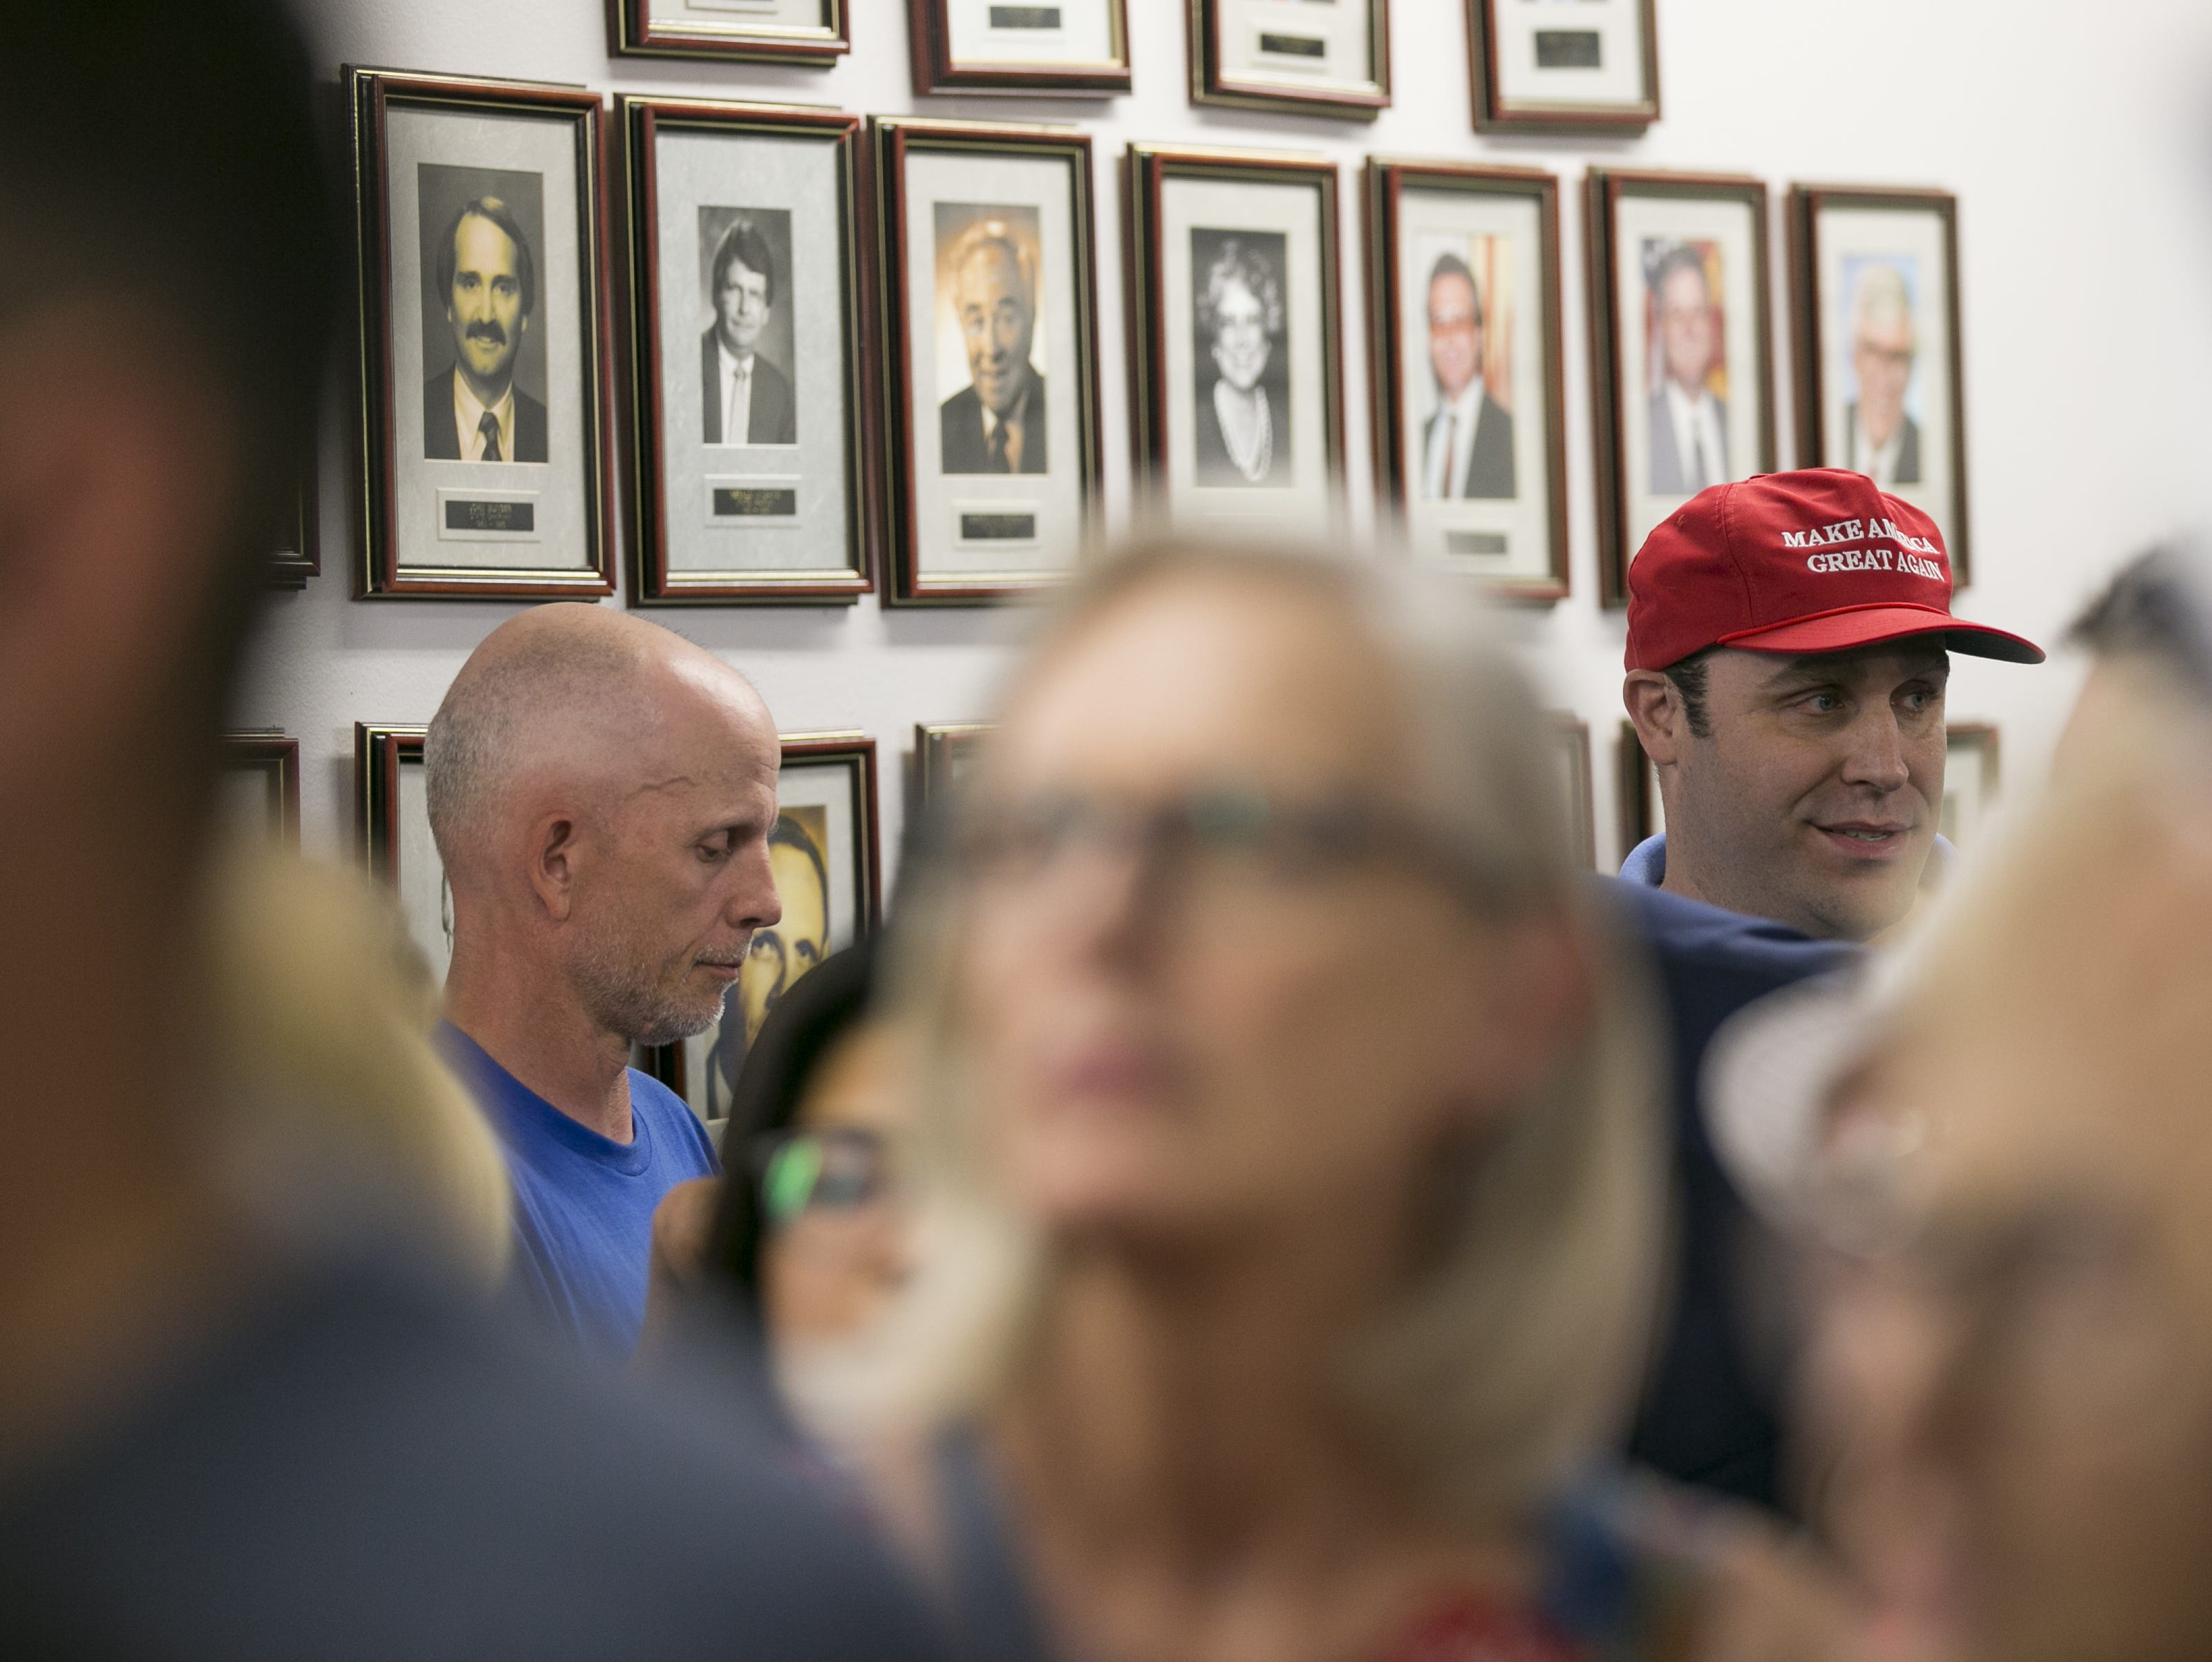 Republican supporters watch Sen. Lindsey Graham, R-S.C. as he speaks at the Arizona GOP headquarters in Phoenix, Ariz. on Oct. 27, 2018.